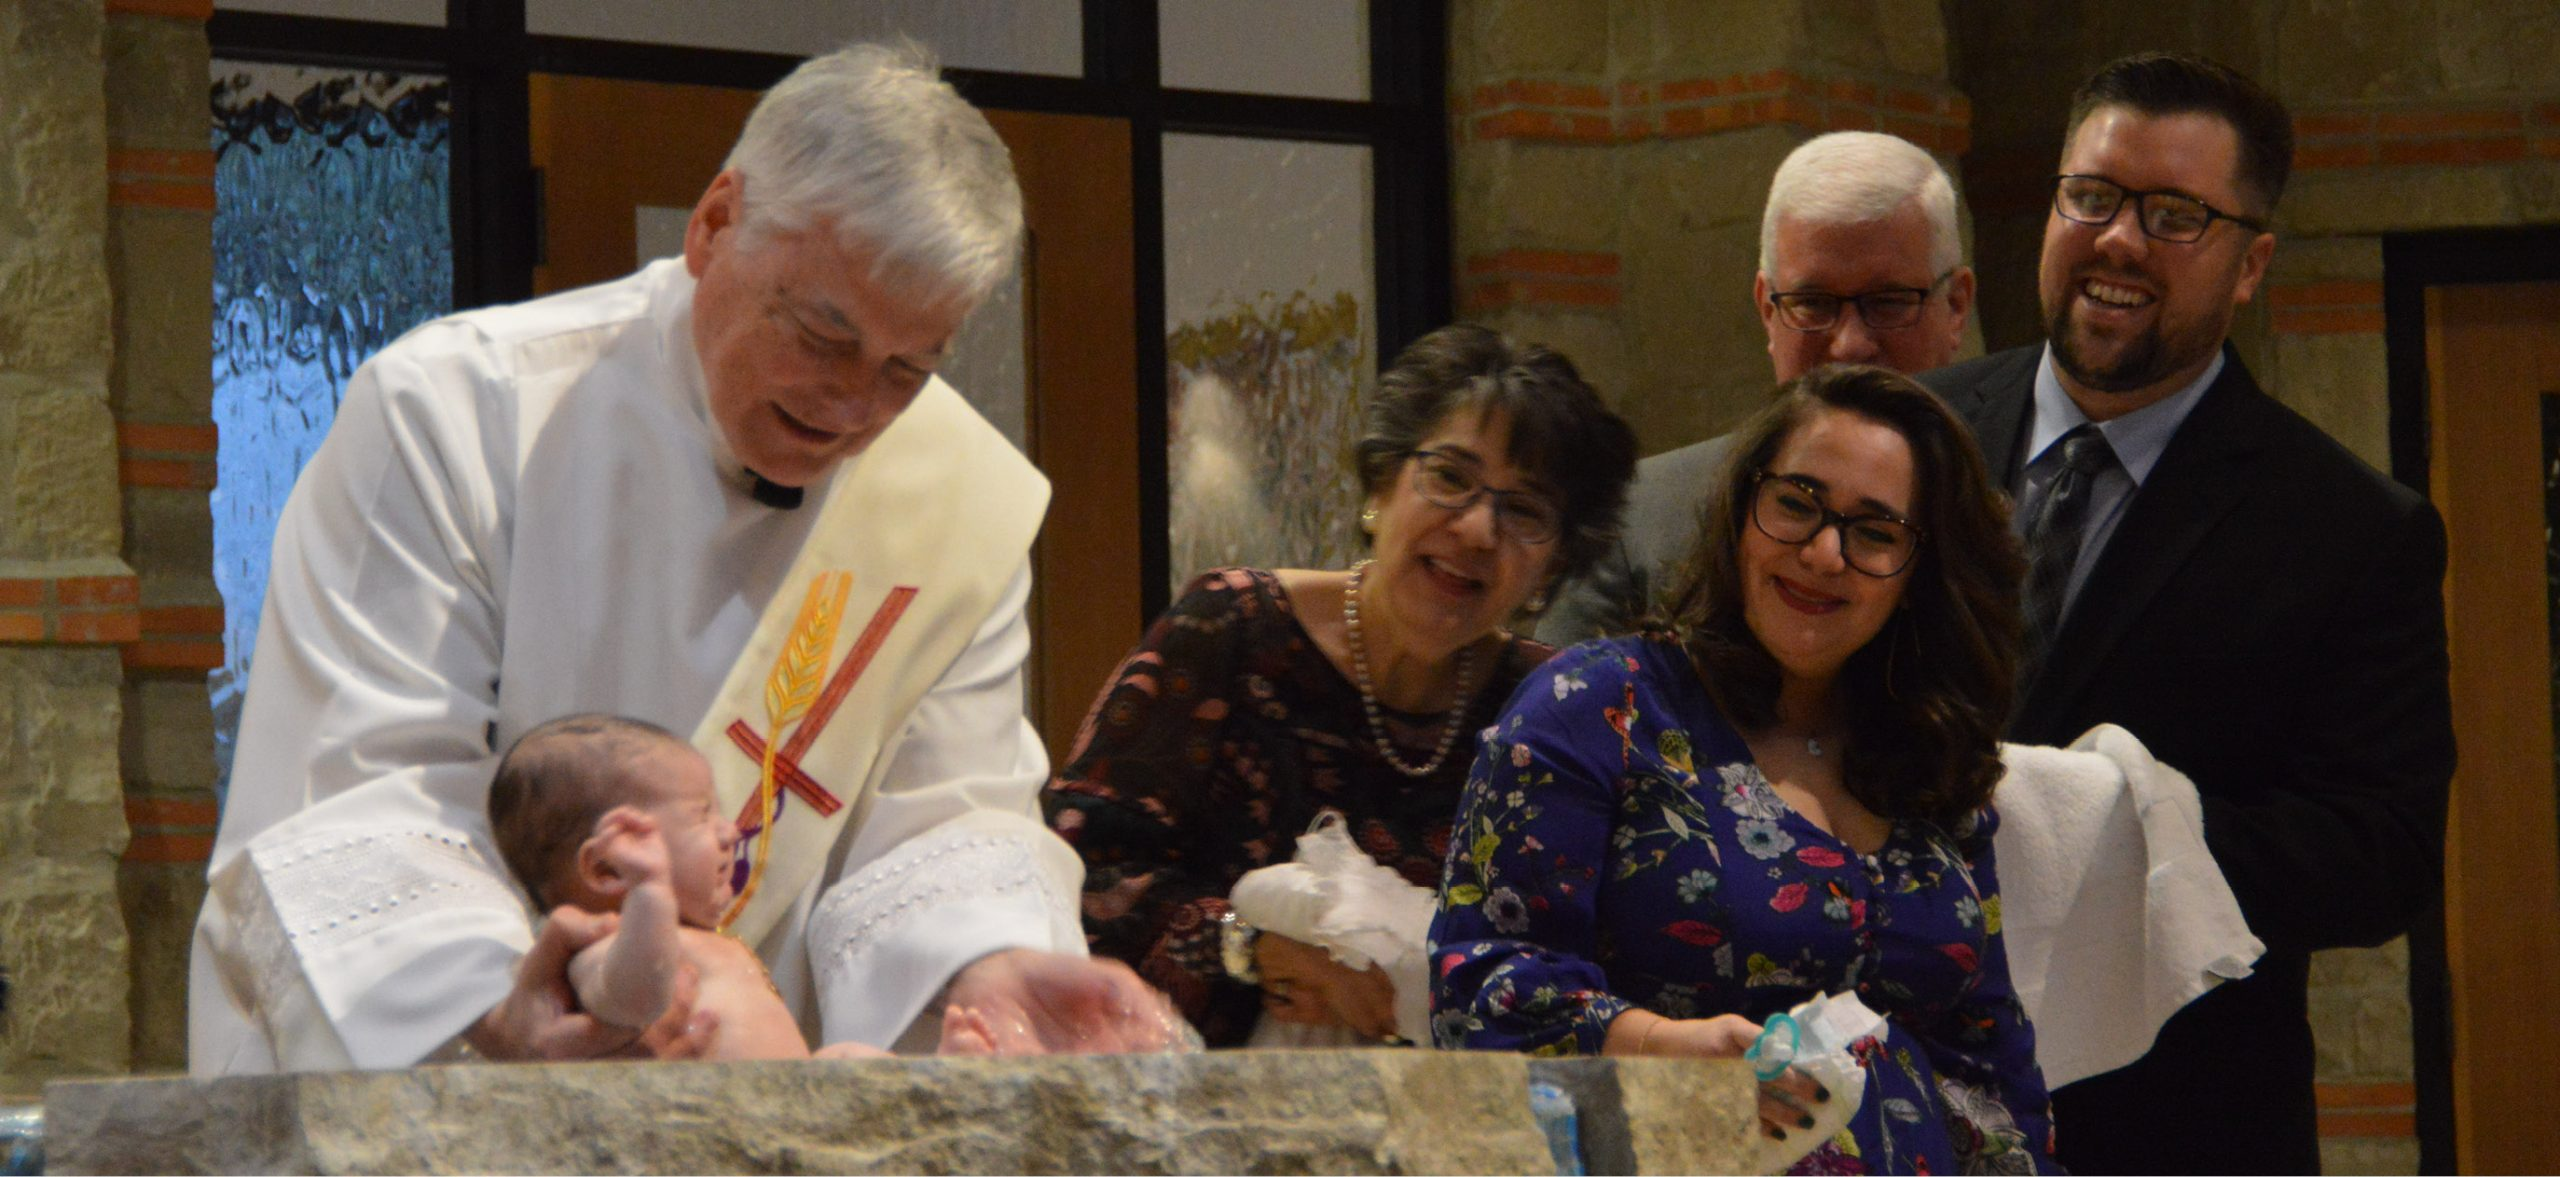 Deacon Jim Baptism with parents and godparents